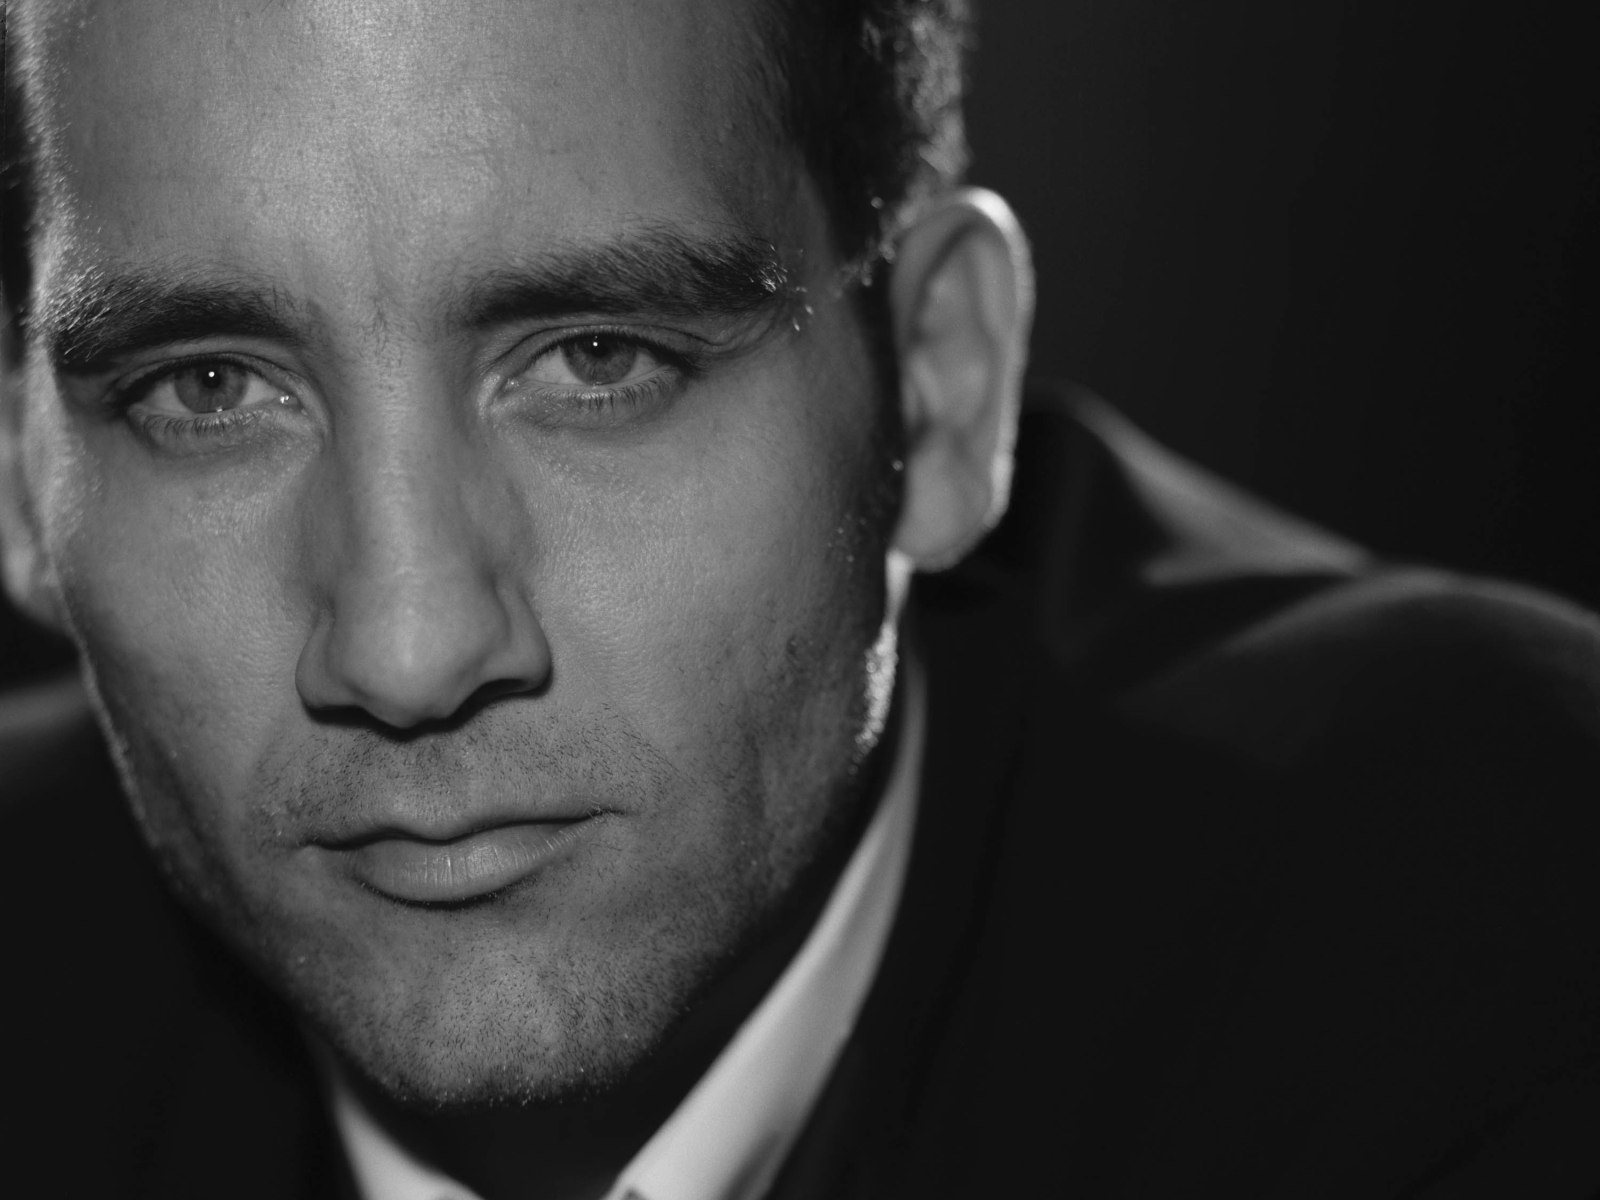 1600x1200 - Clive Owen  Wallpapers 18